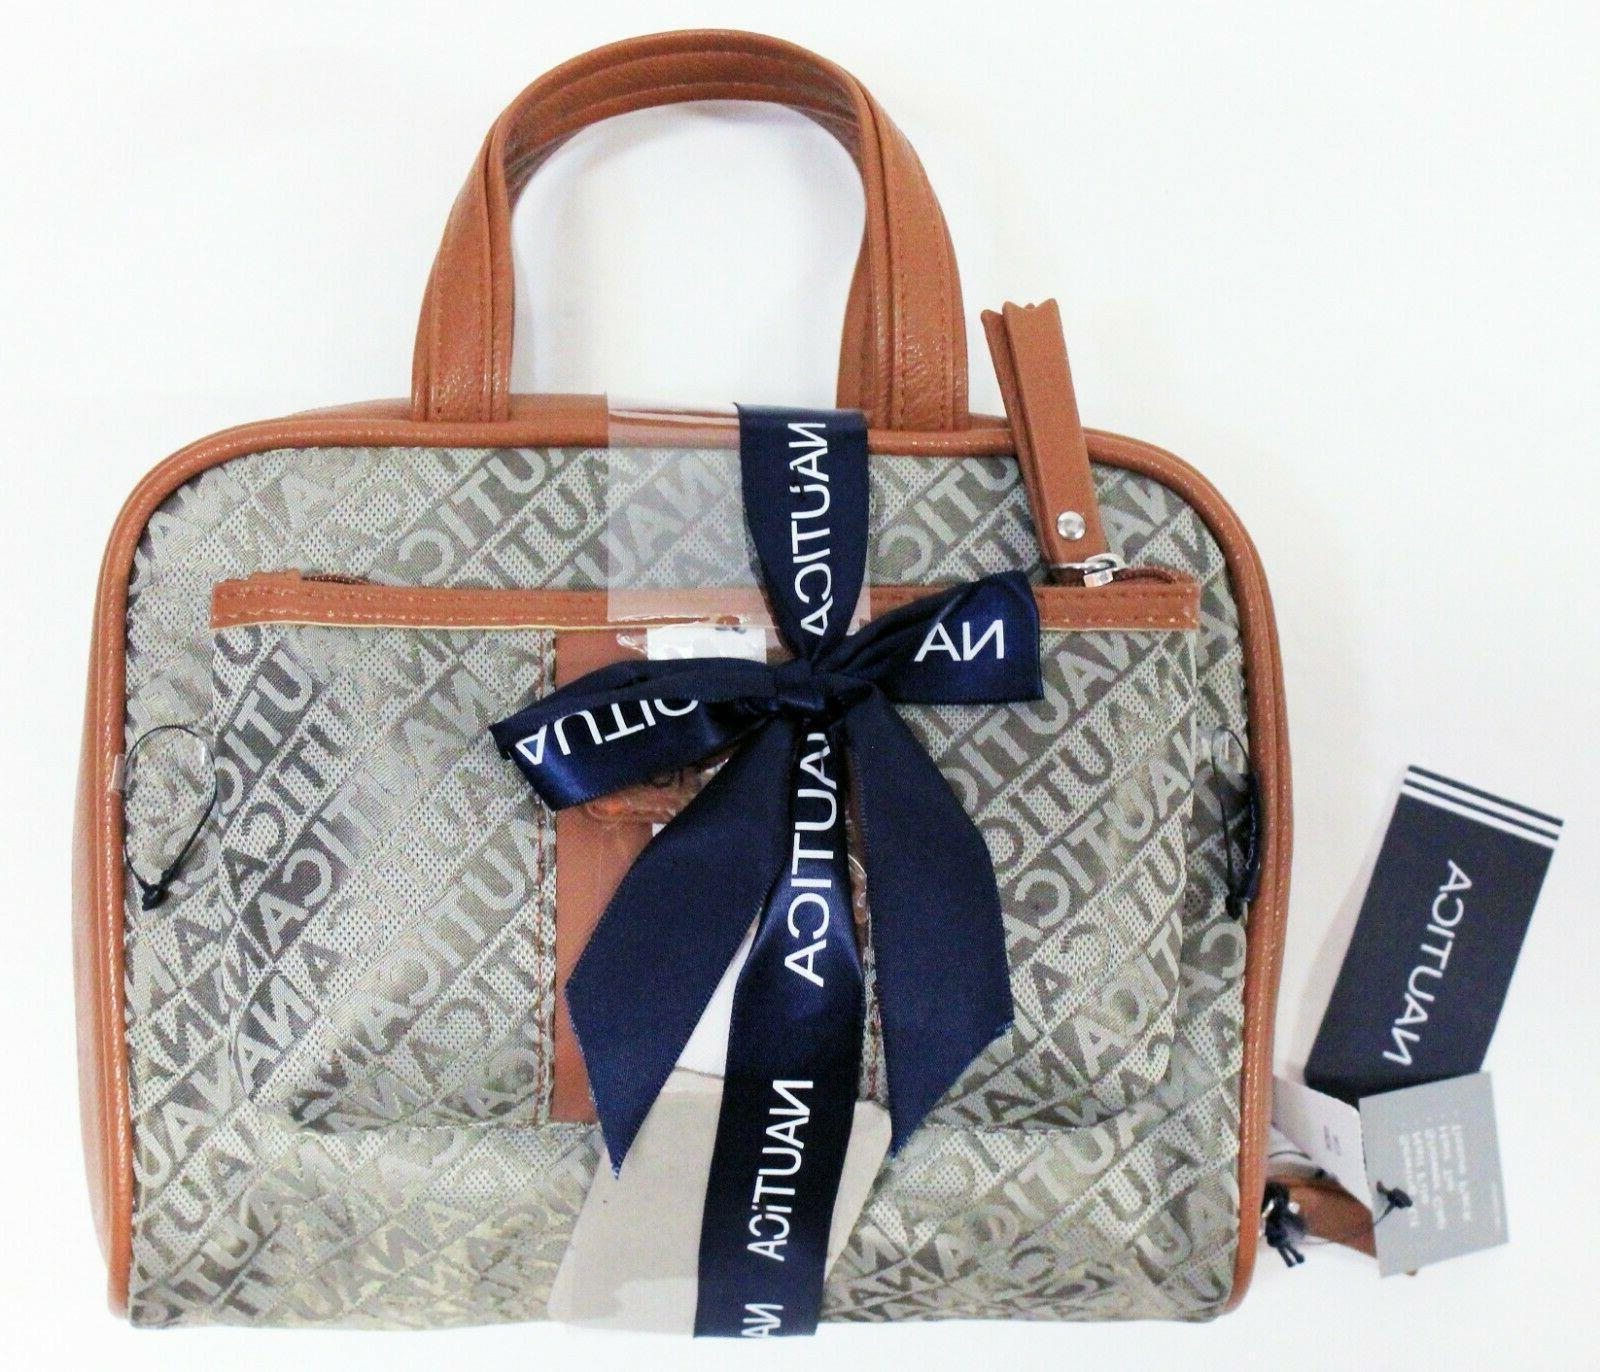 new 2 pc overnight cosmetic travel bag